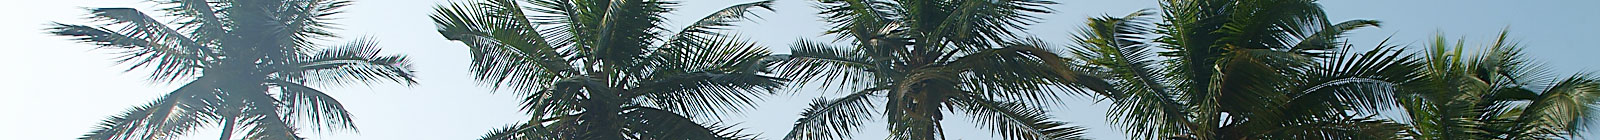 Ghana Palm Tree Tops